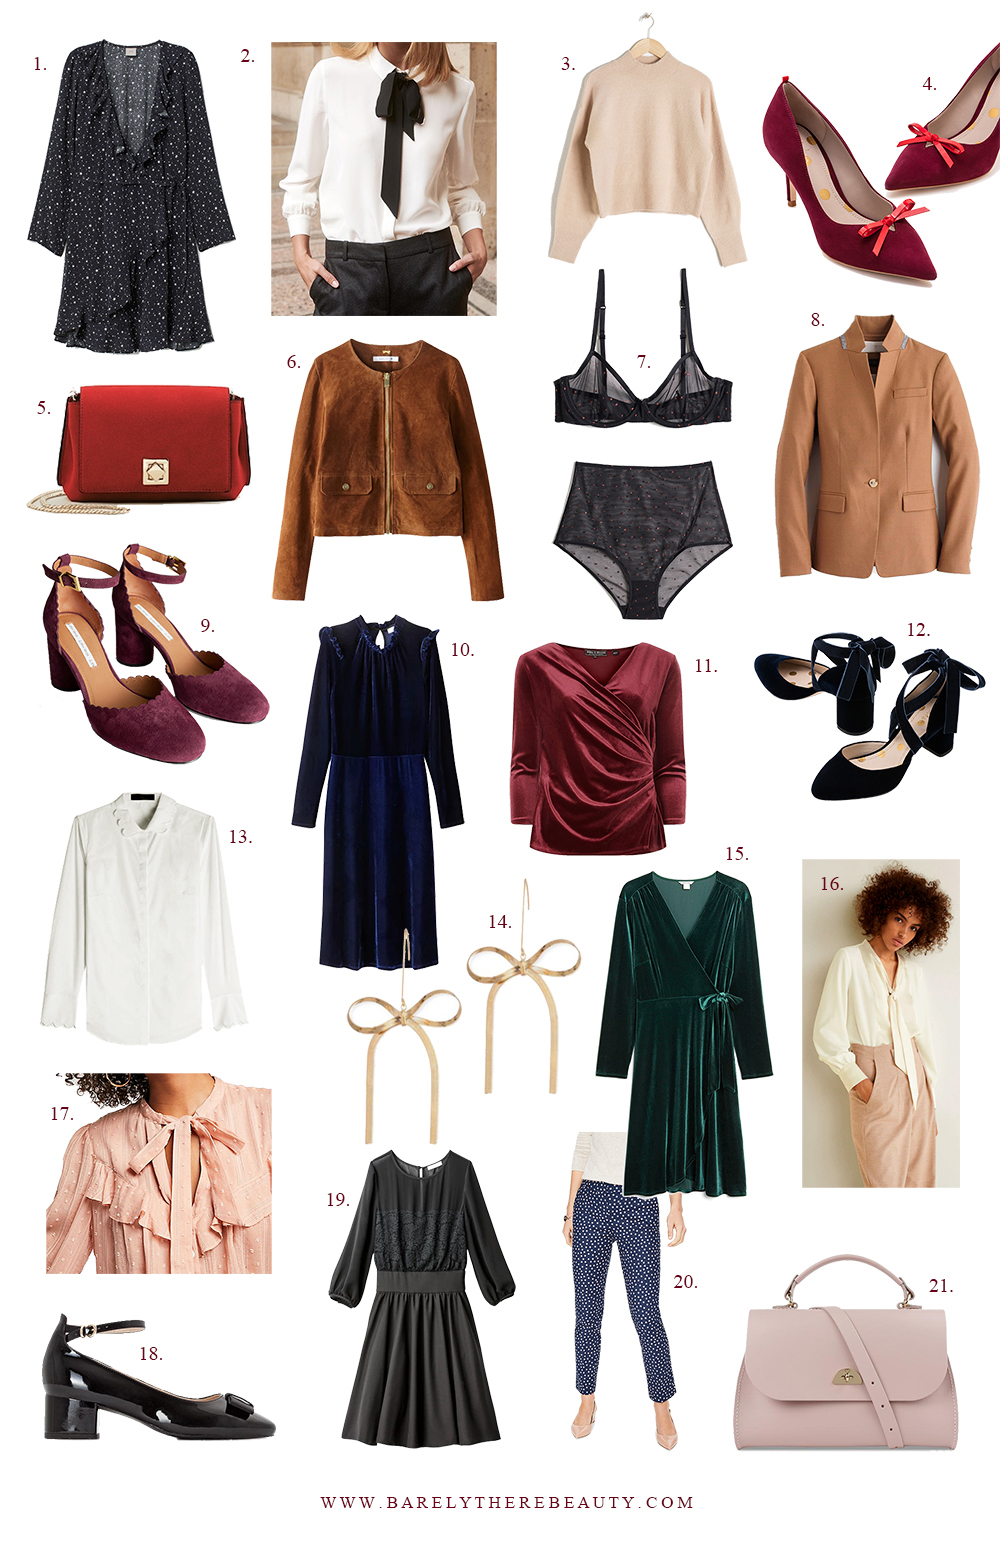 christmas-gift-guide-for-her-style-fashion-preppy-barely-there-beauty-blog